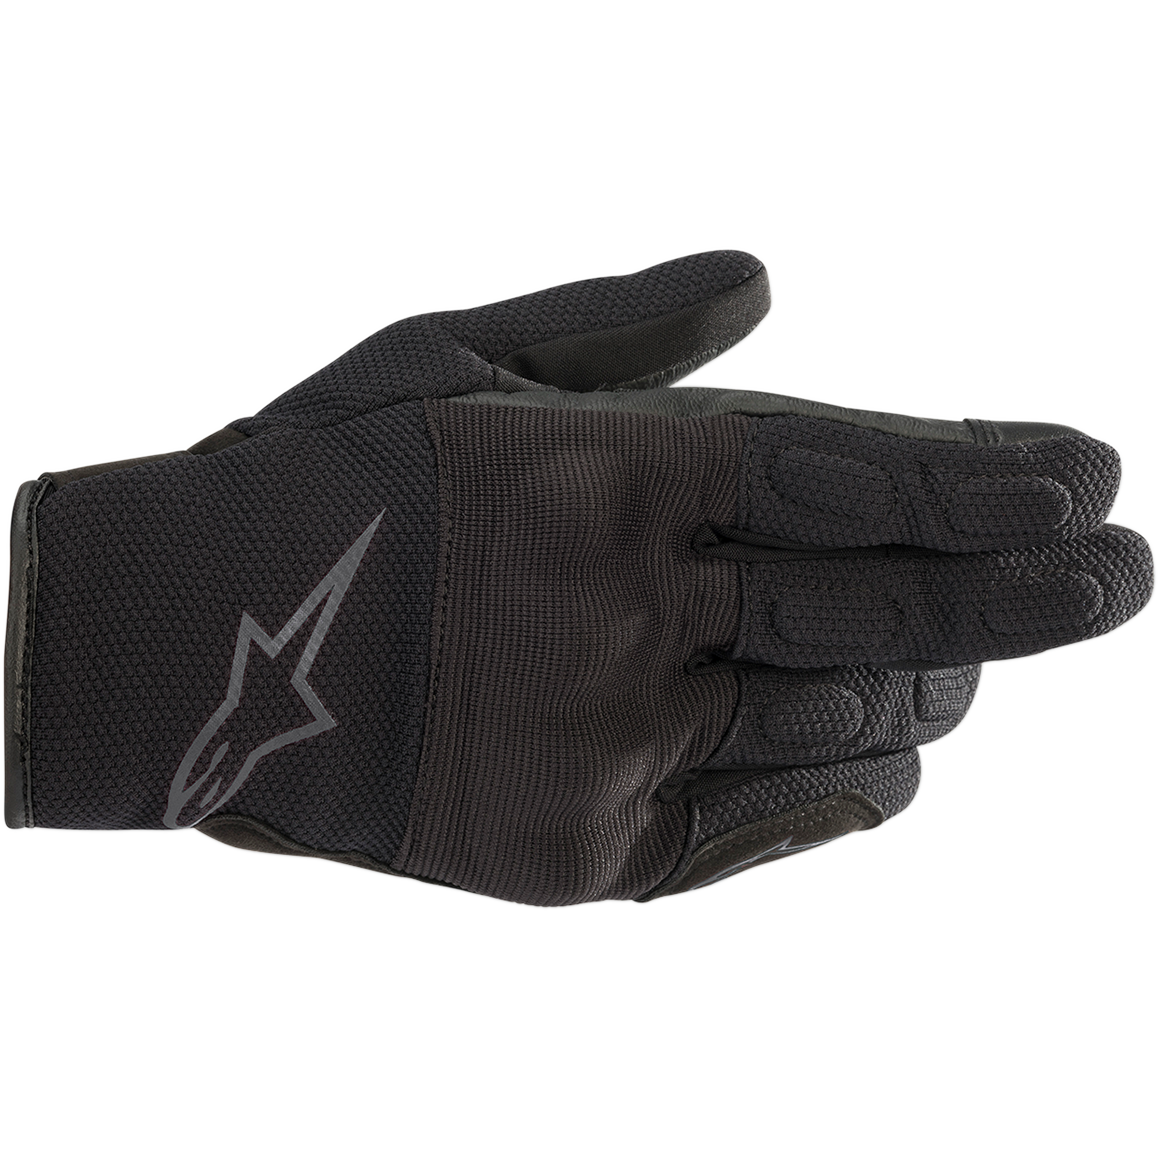 S-Max Women's Gloves